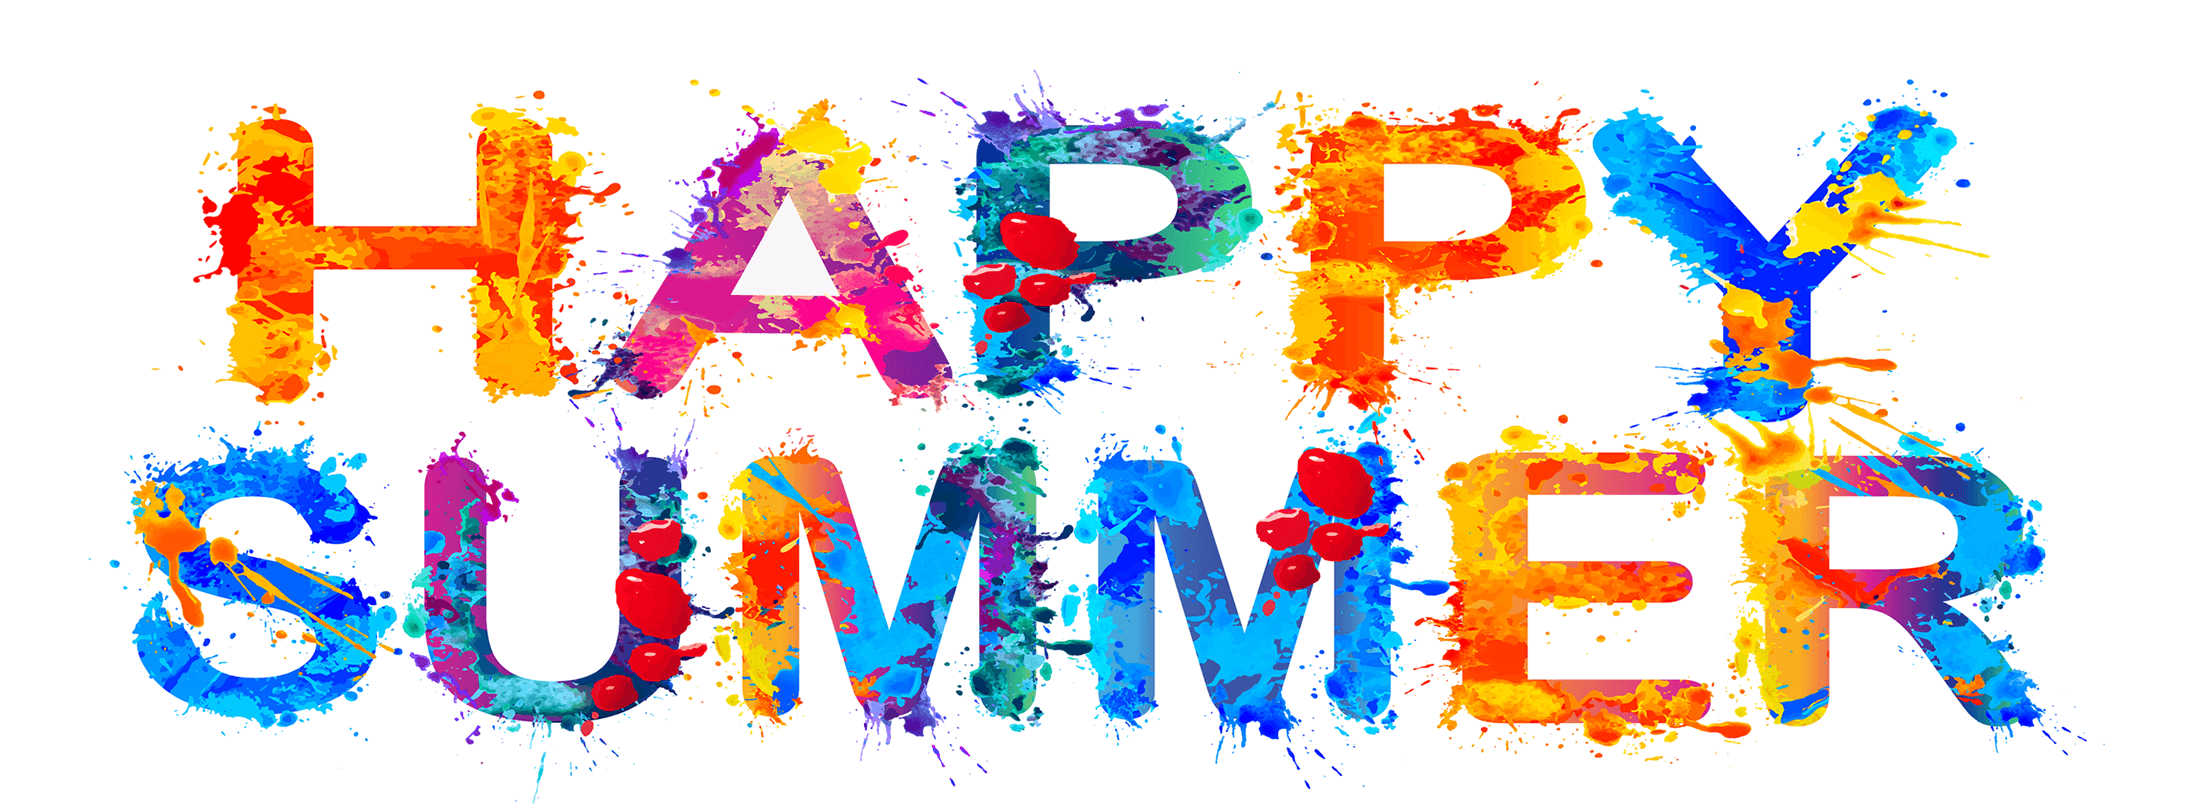 Summer Happy pictures photo